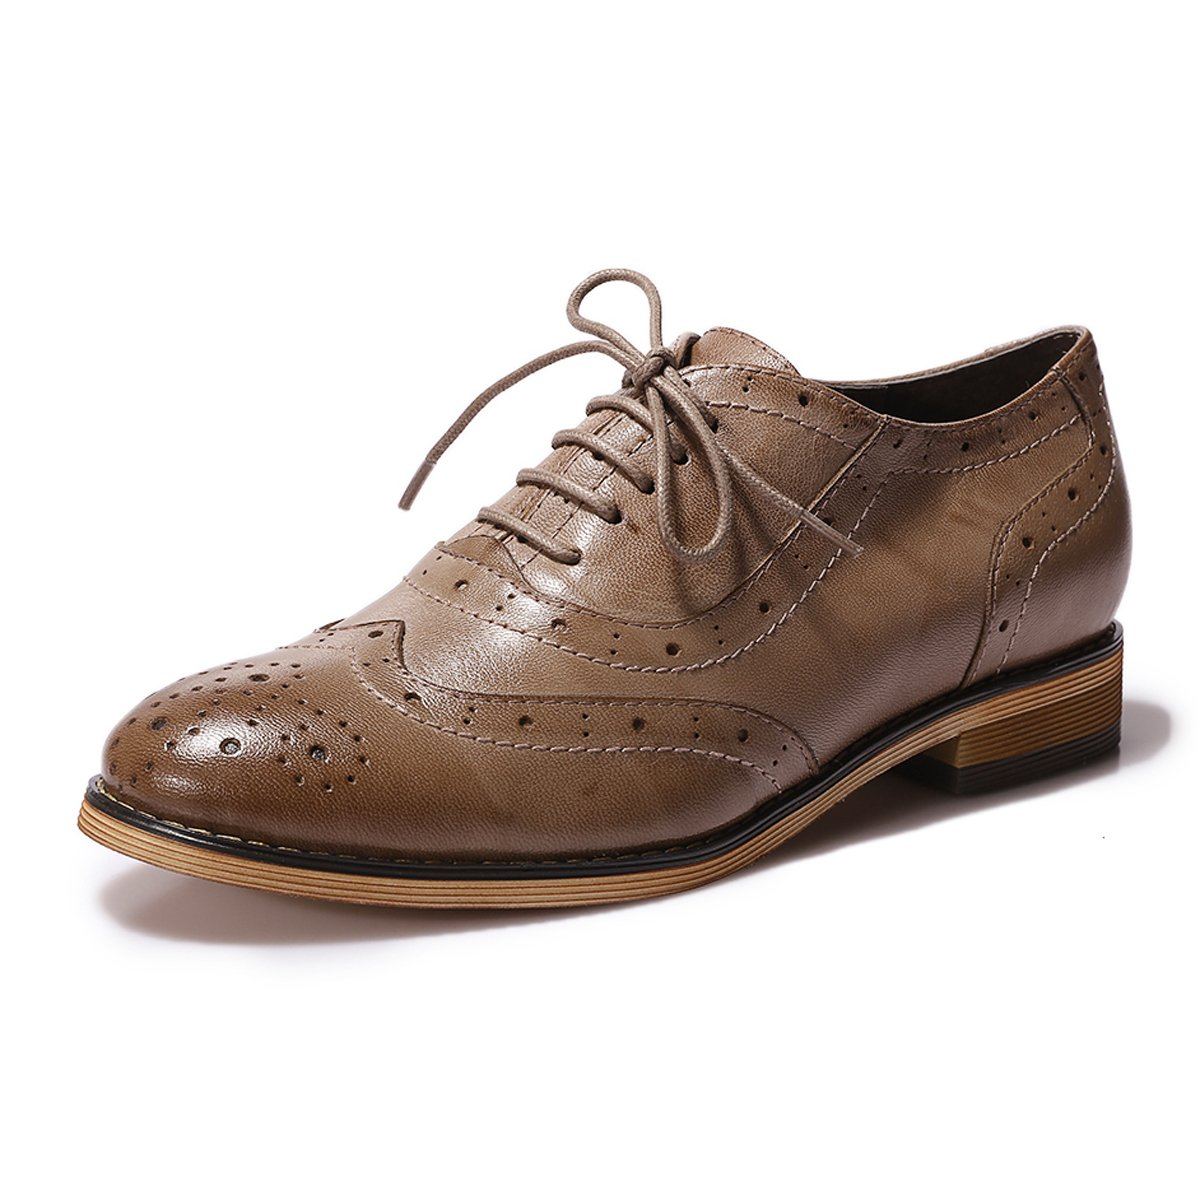 Mona Flying Womens Leather Flat Oxfords Shoes For Women Perforated Lace-up Wingtip Vintage Brogues Shoes,10 B(M) US,Coffee